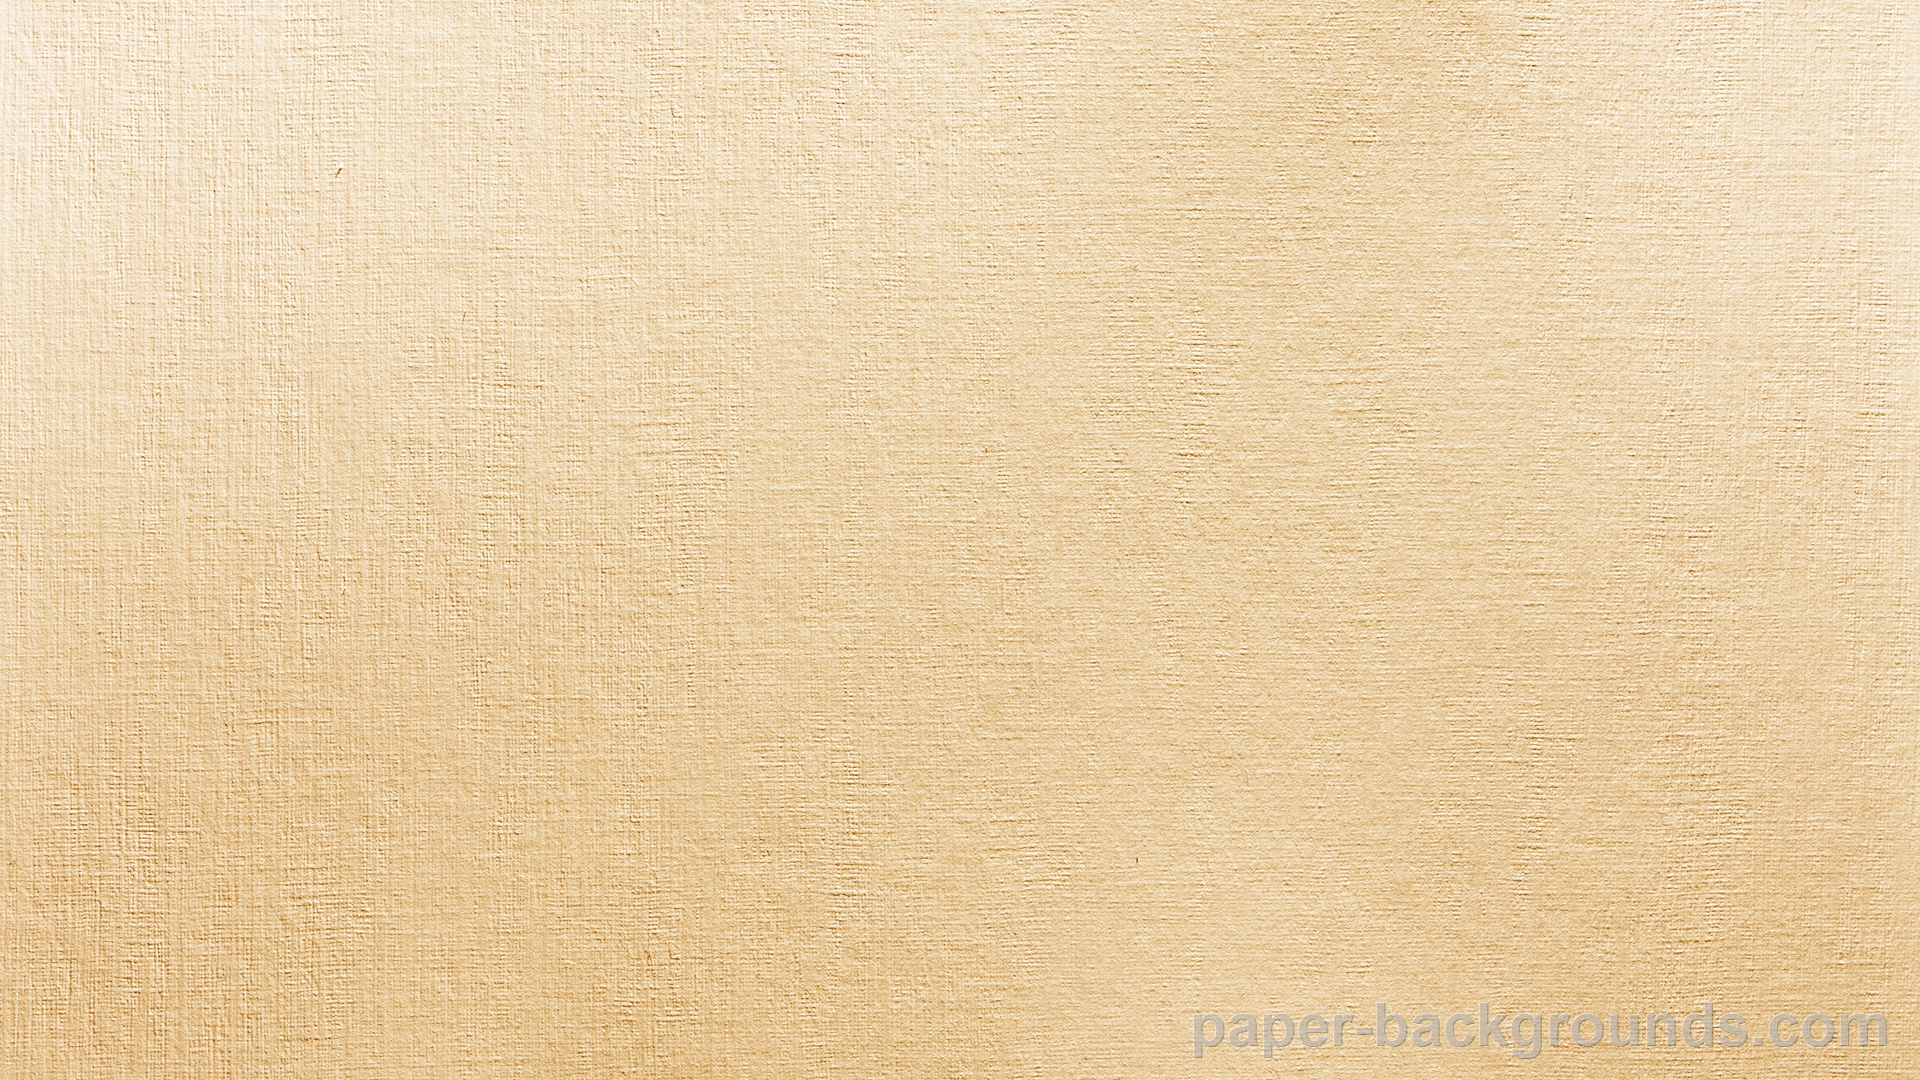 Paper backgrounds vintage paper texture royalty free for Paper wallpaper